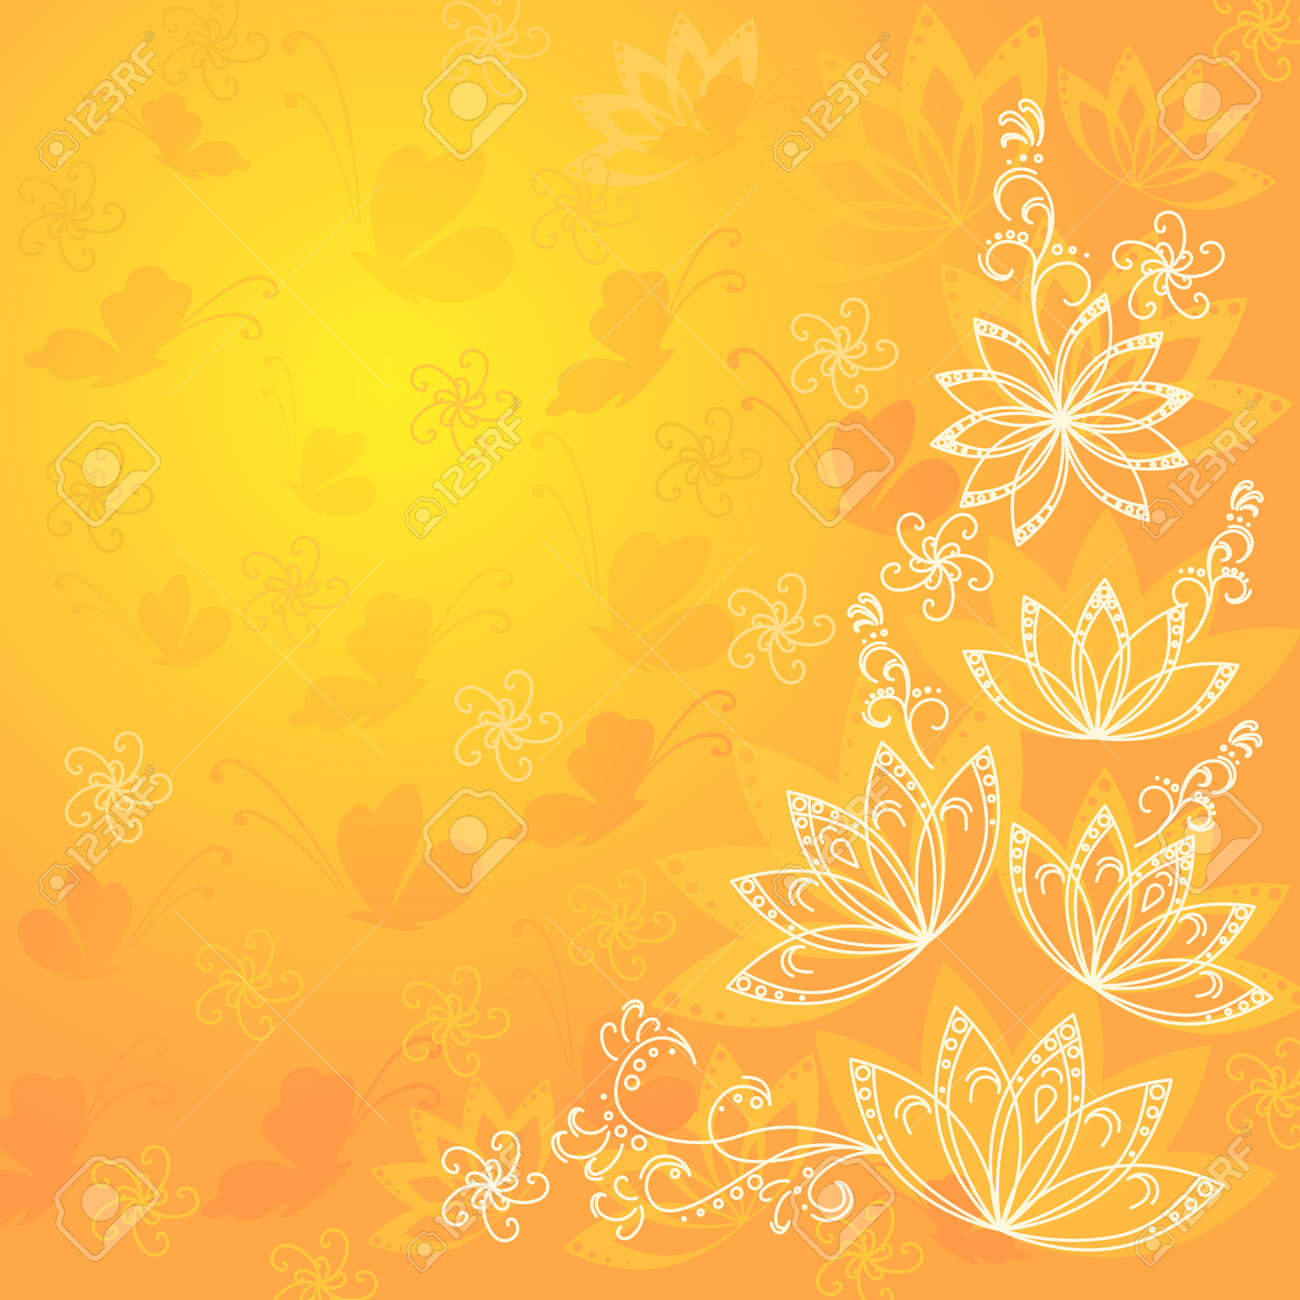 Abstract Orange And Yellow Floral Background With Flowers Contours